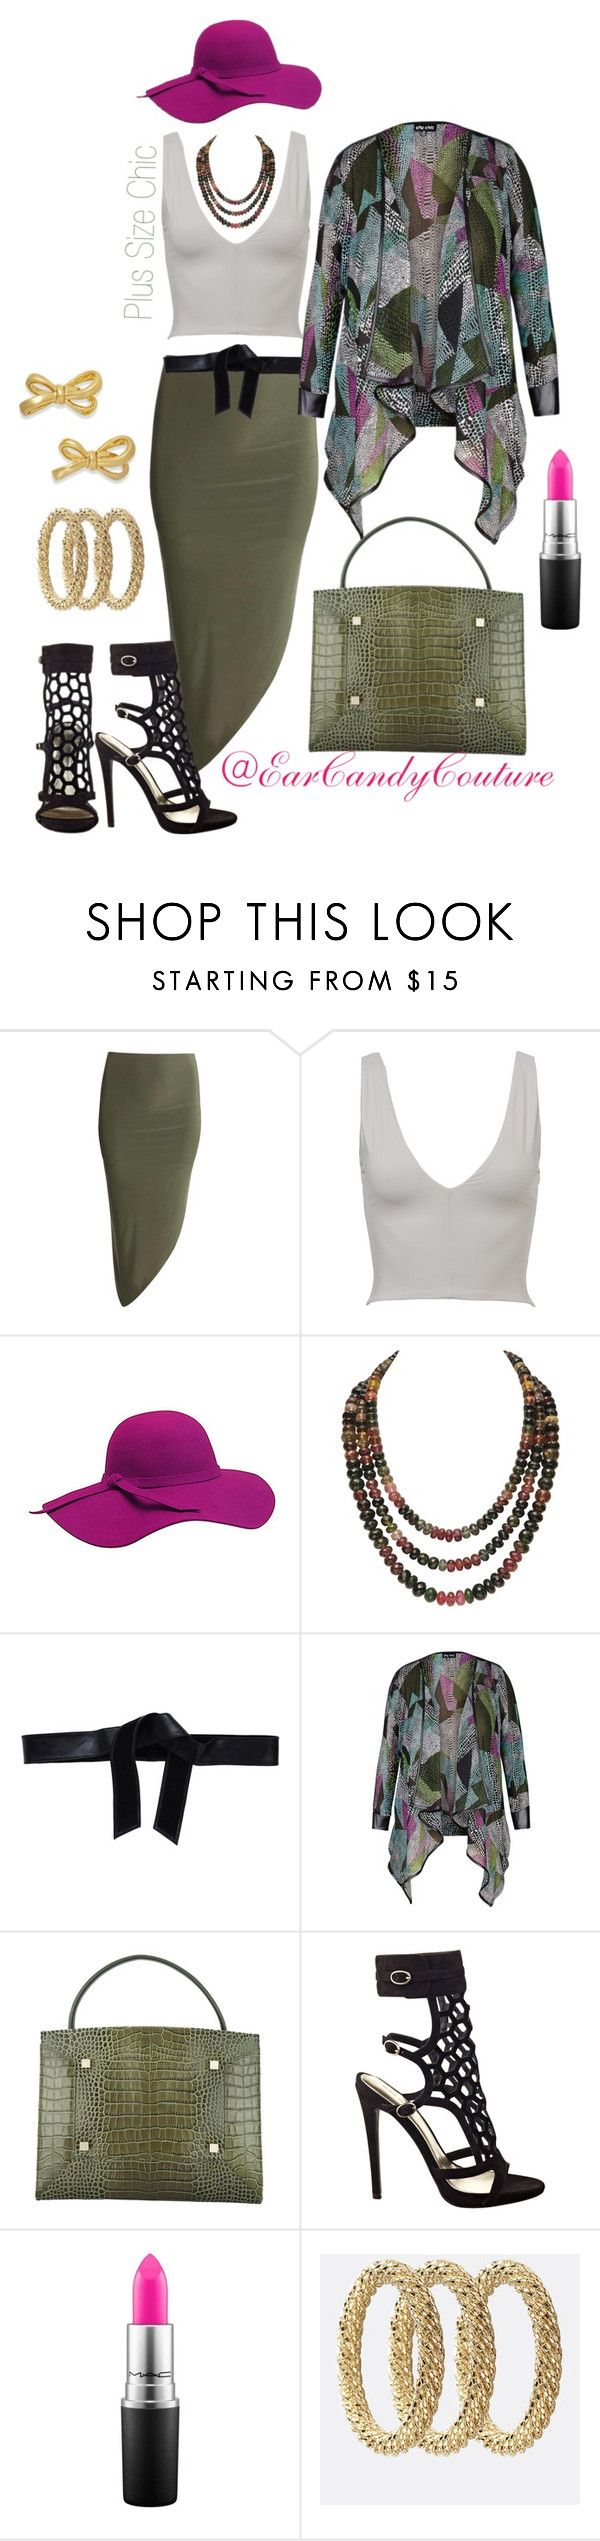 """""""Untitled #154"""" by curvaceouscutie on Polyvore featuring Boardwalk Style, Roÿ Roger's, Manurina, Nine West, MAC Cosmetics, Avenue and Kate Spade"""